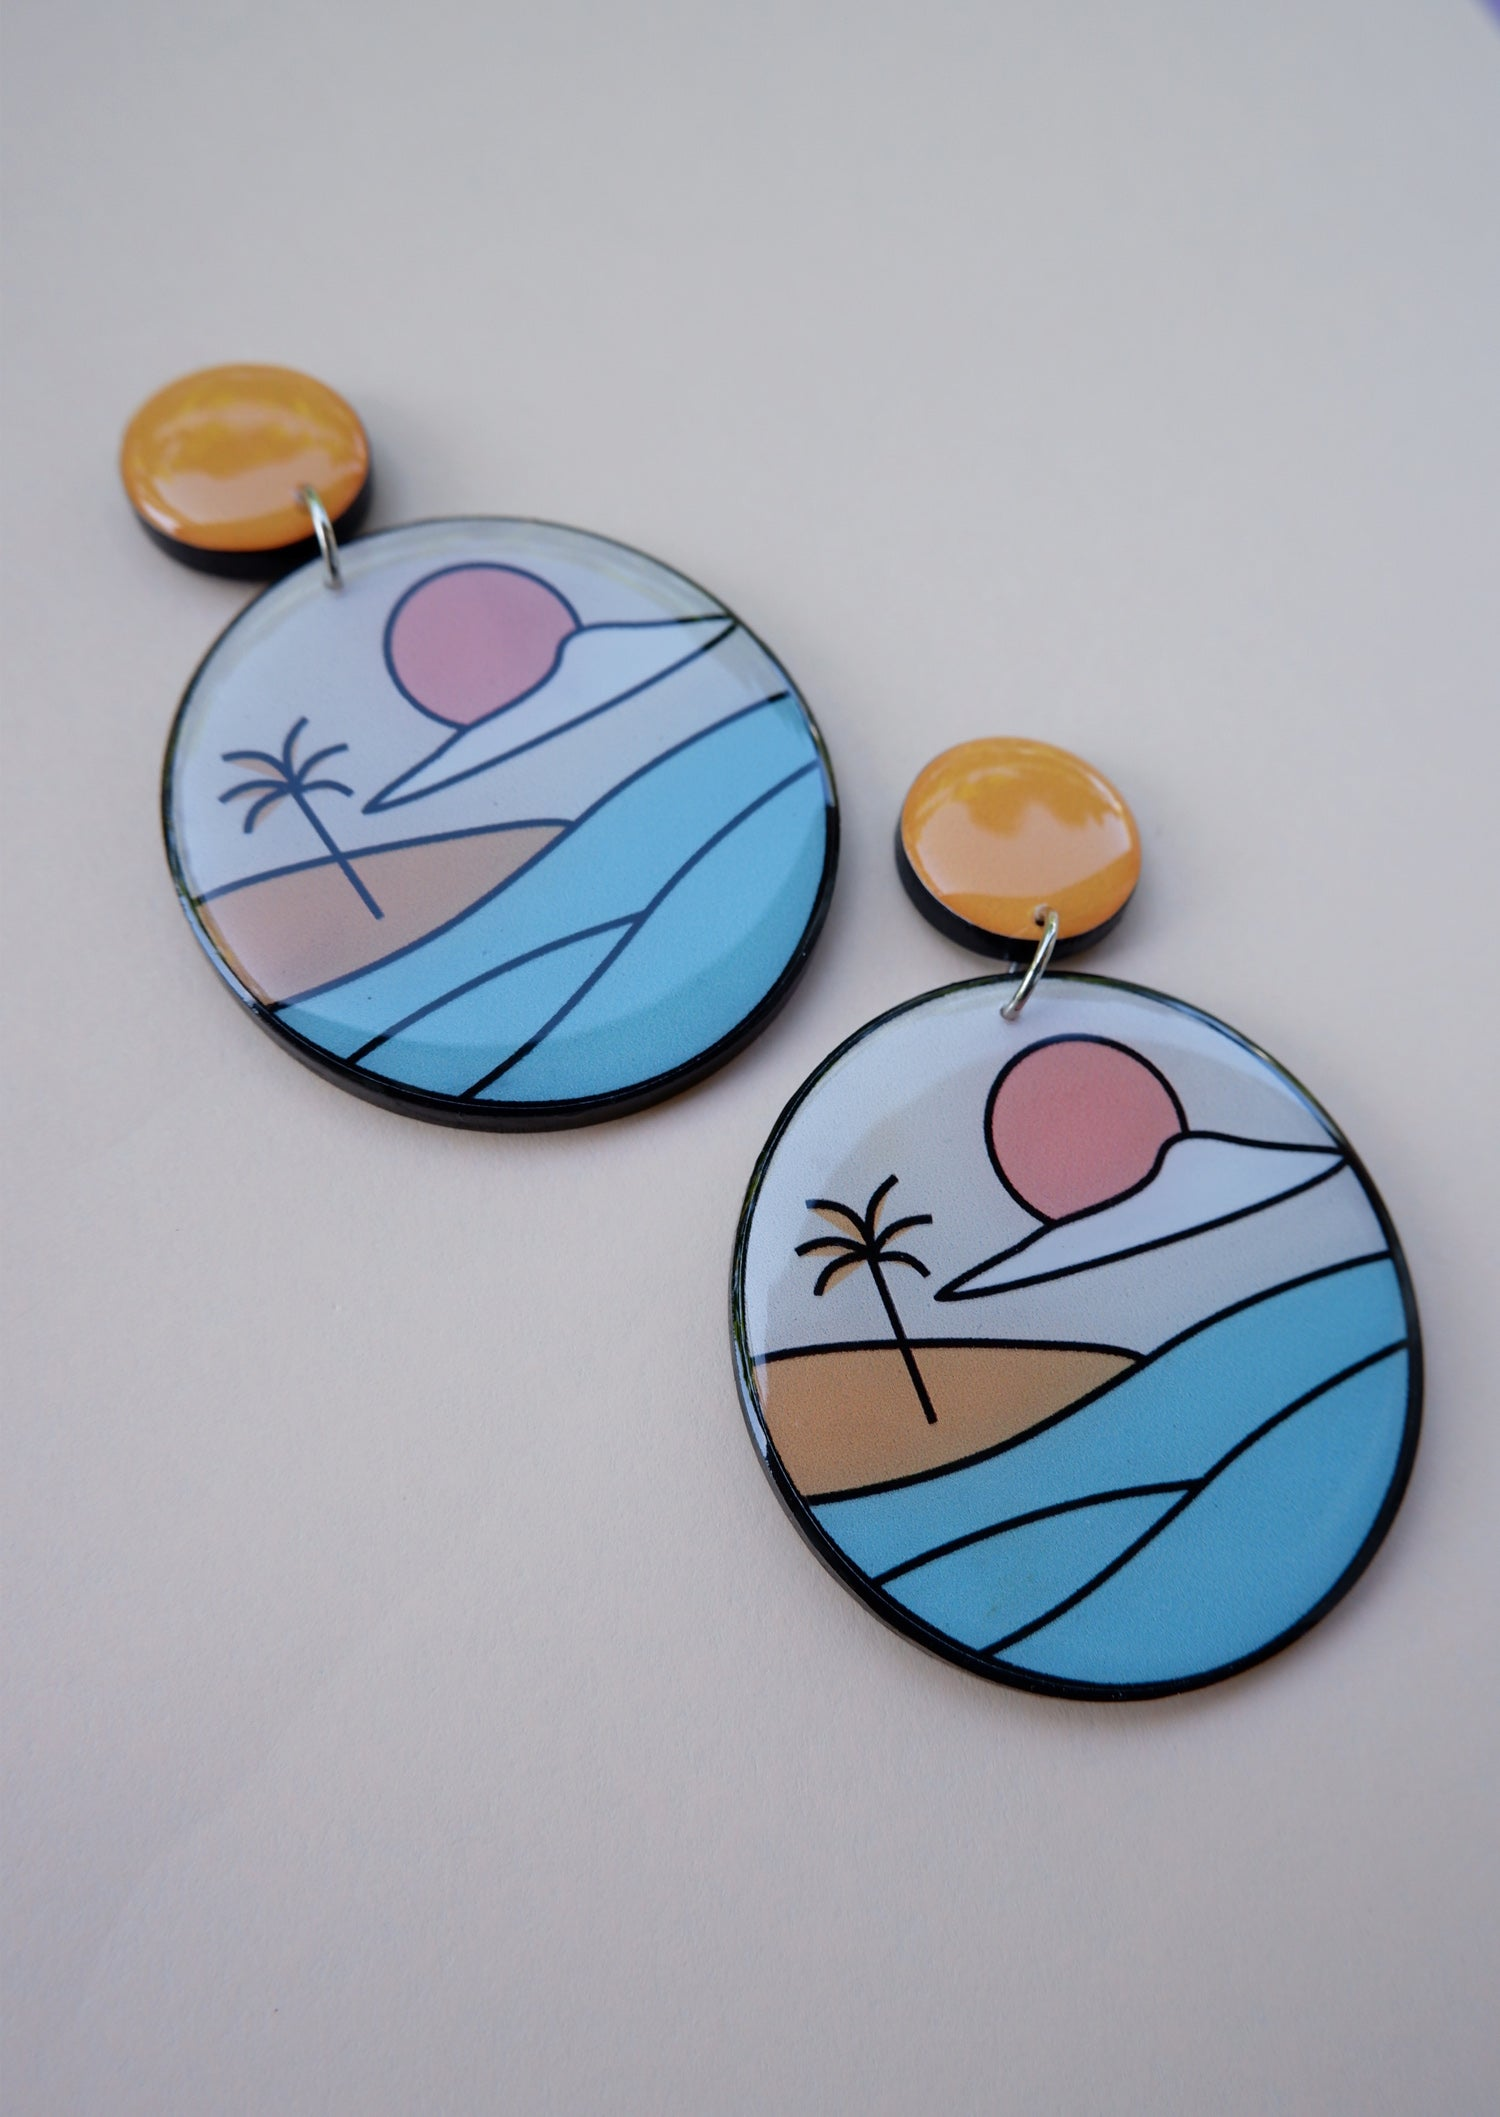 BY THE BEACH EARRINGS